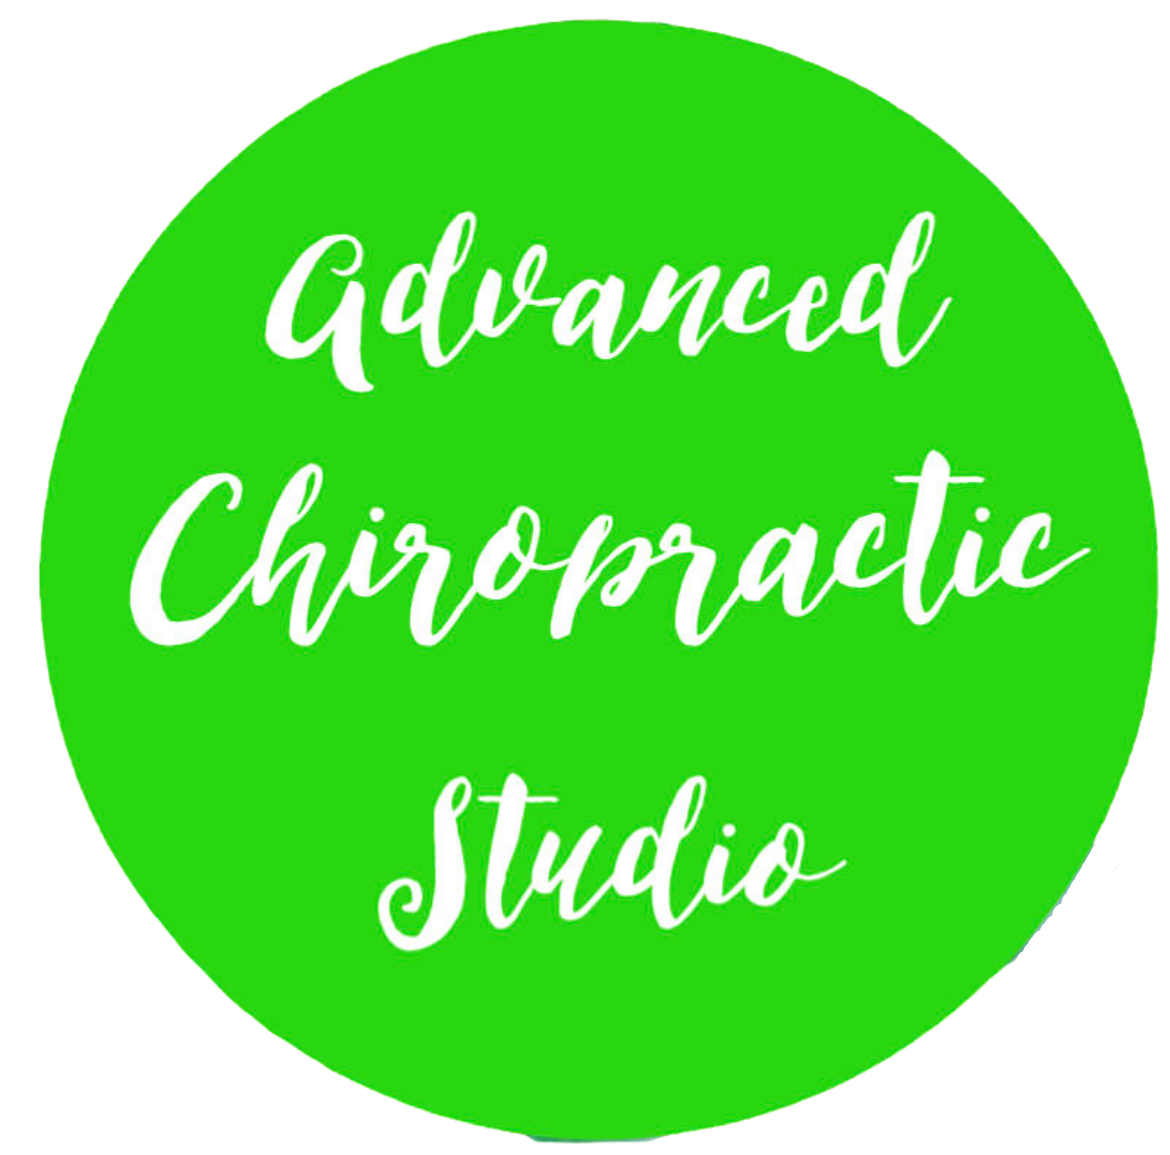 Advanced Chiropractic Studio